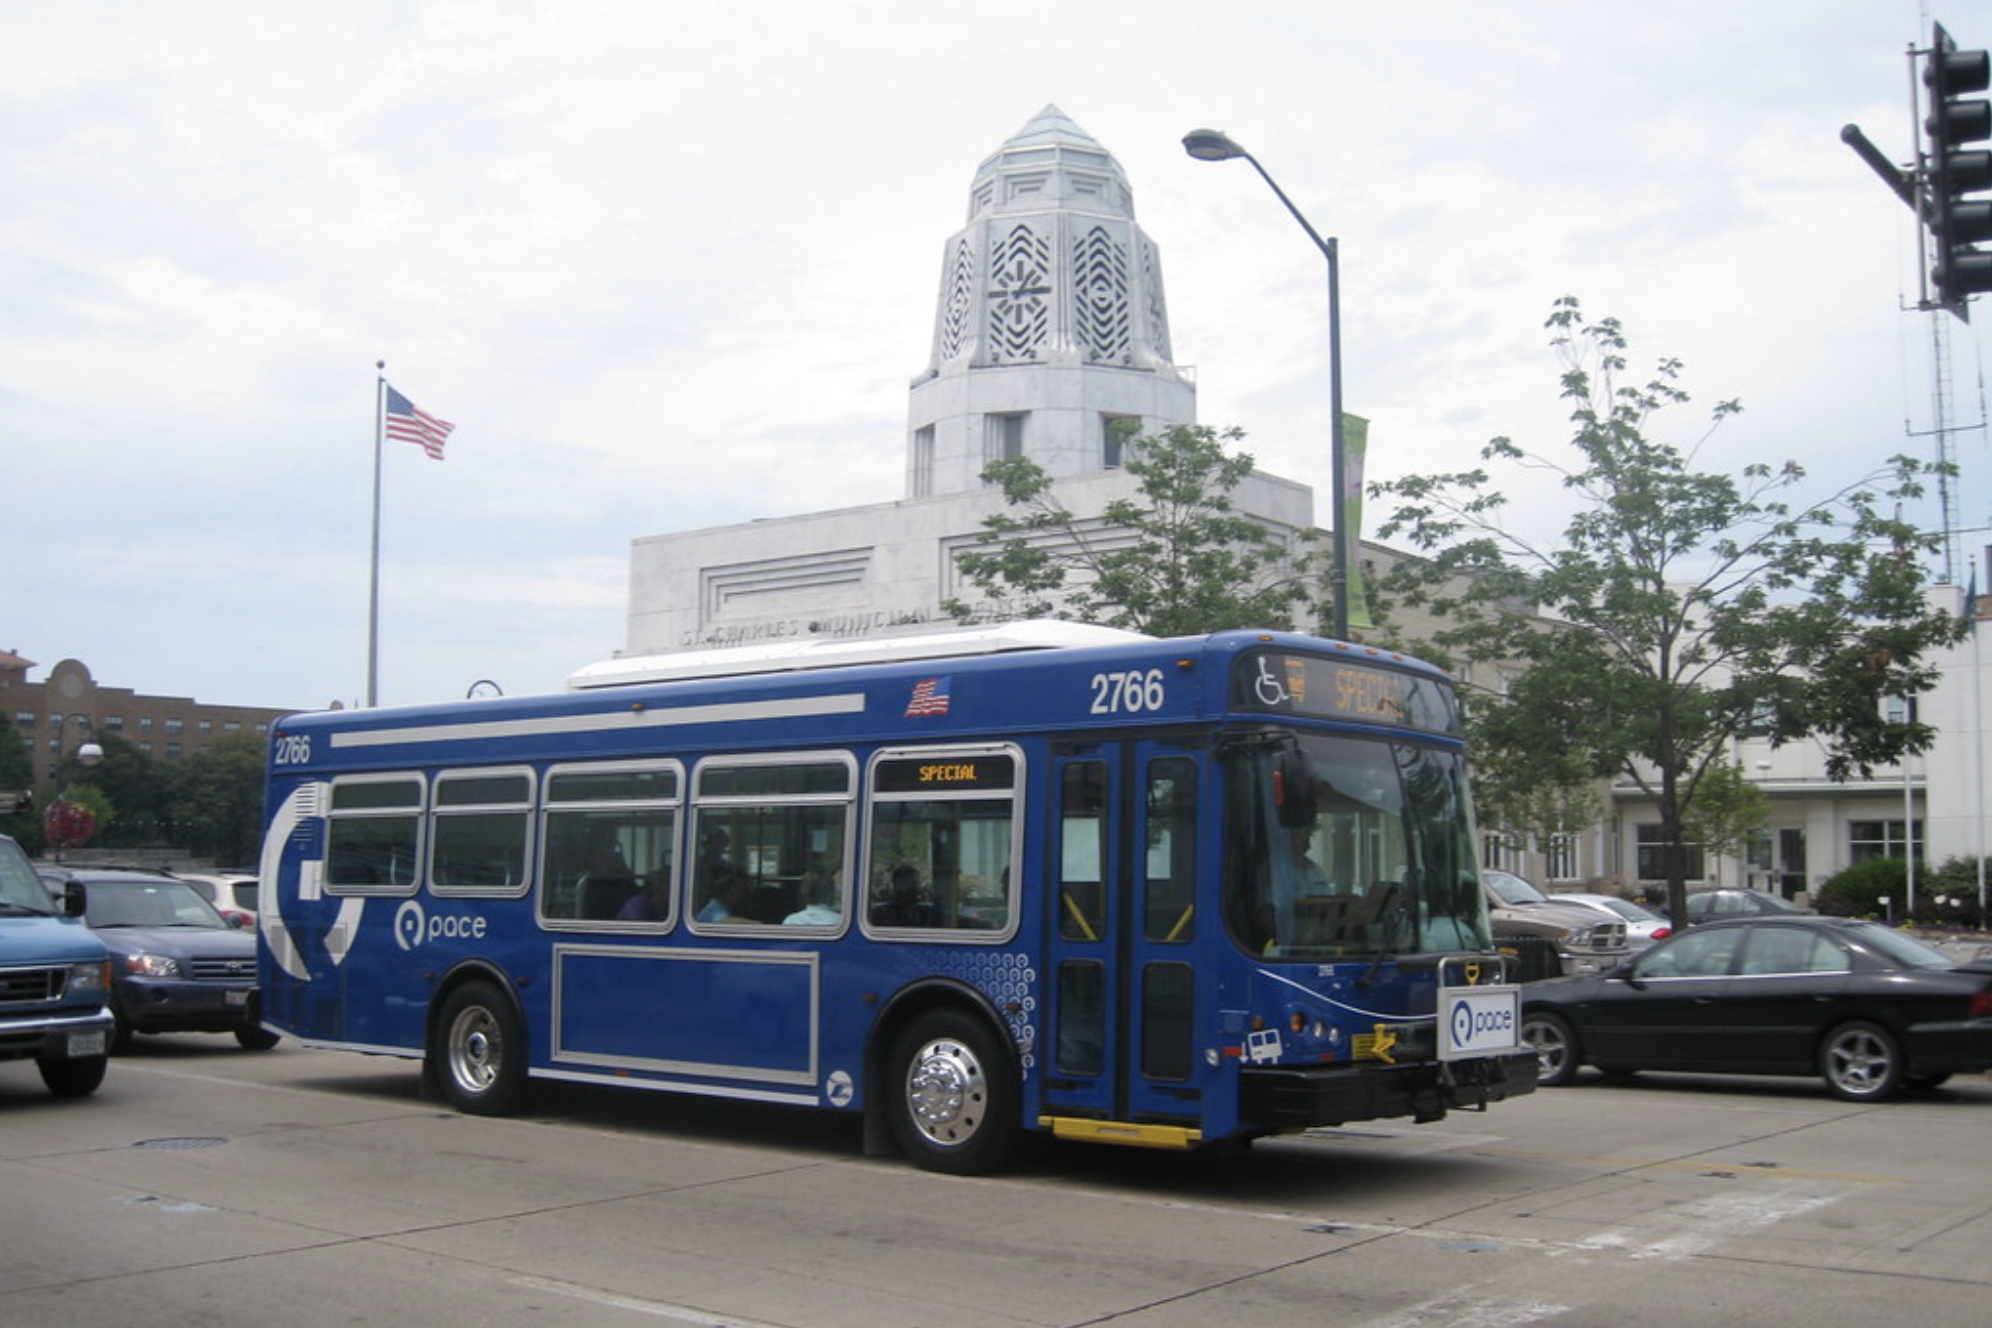 An image of a blue city bus with a domed building in the background.